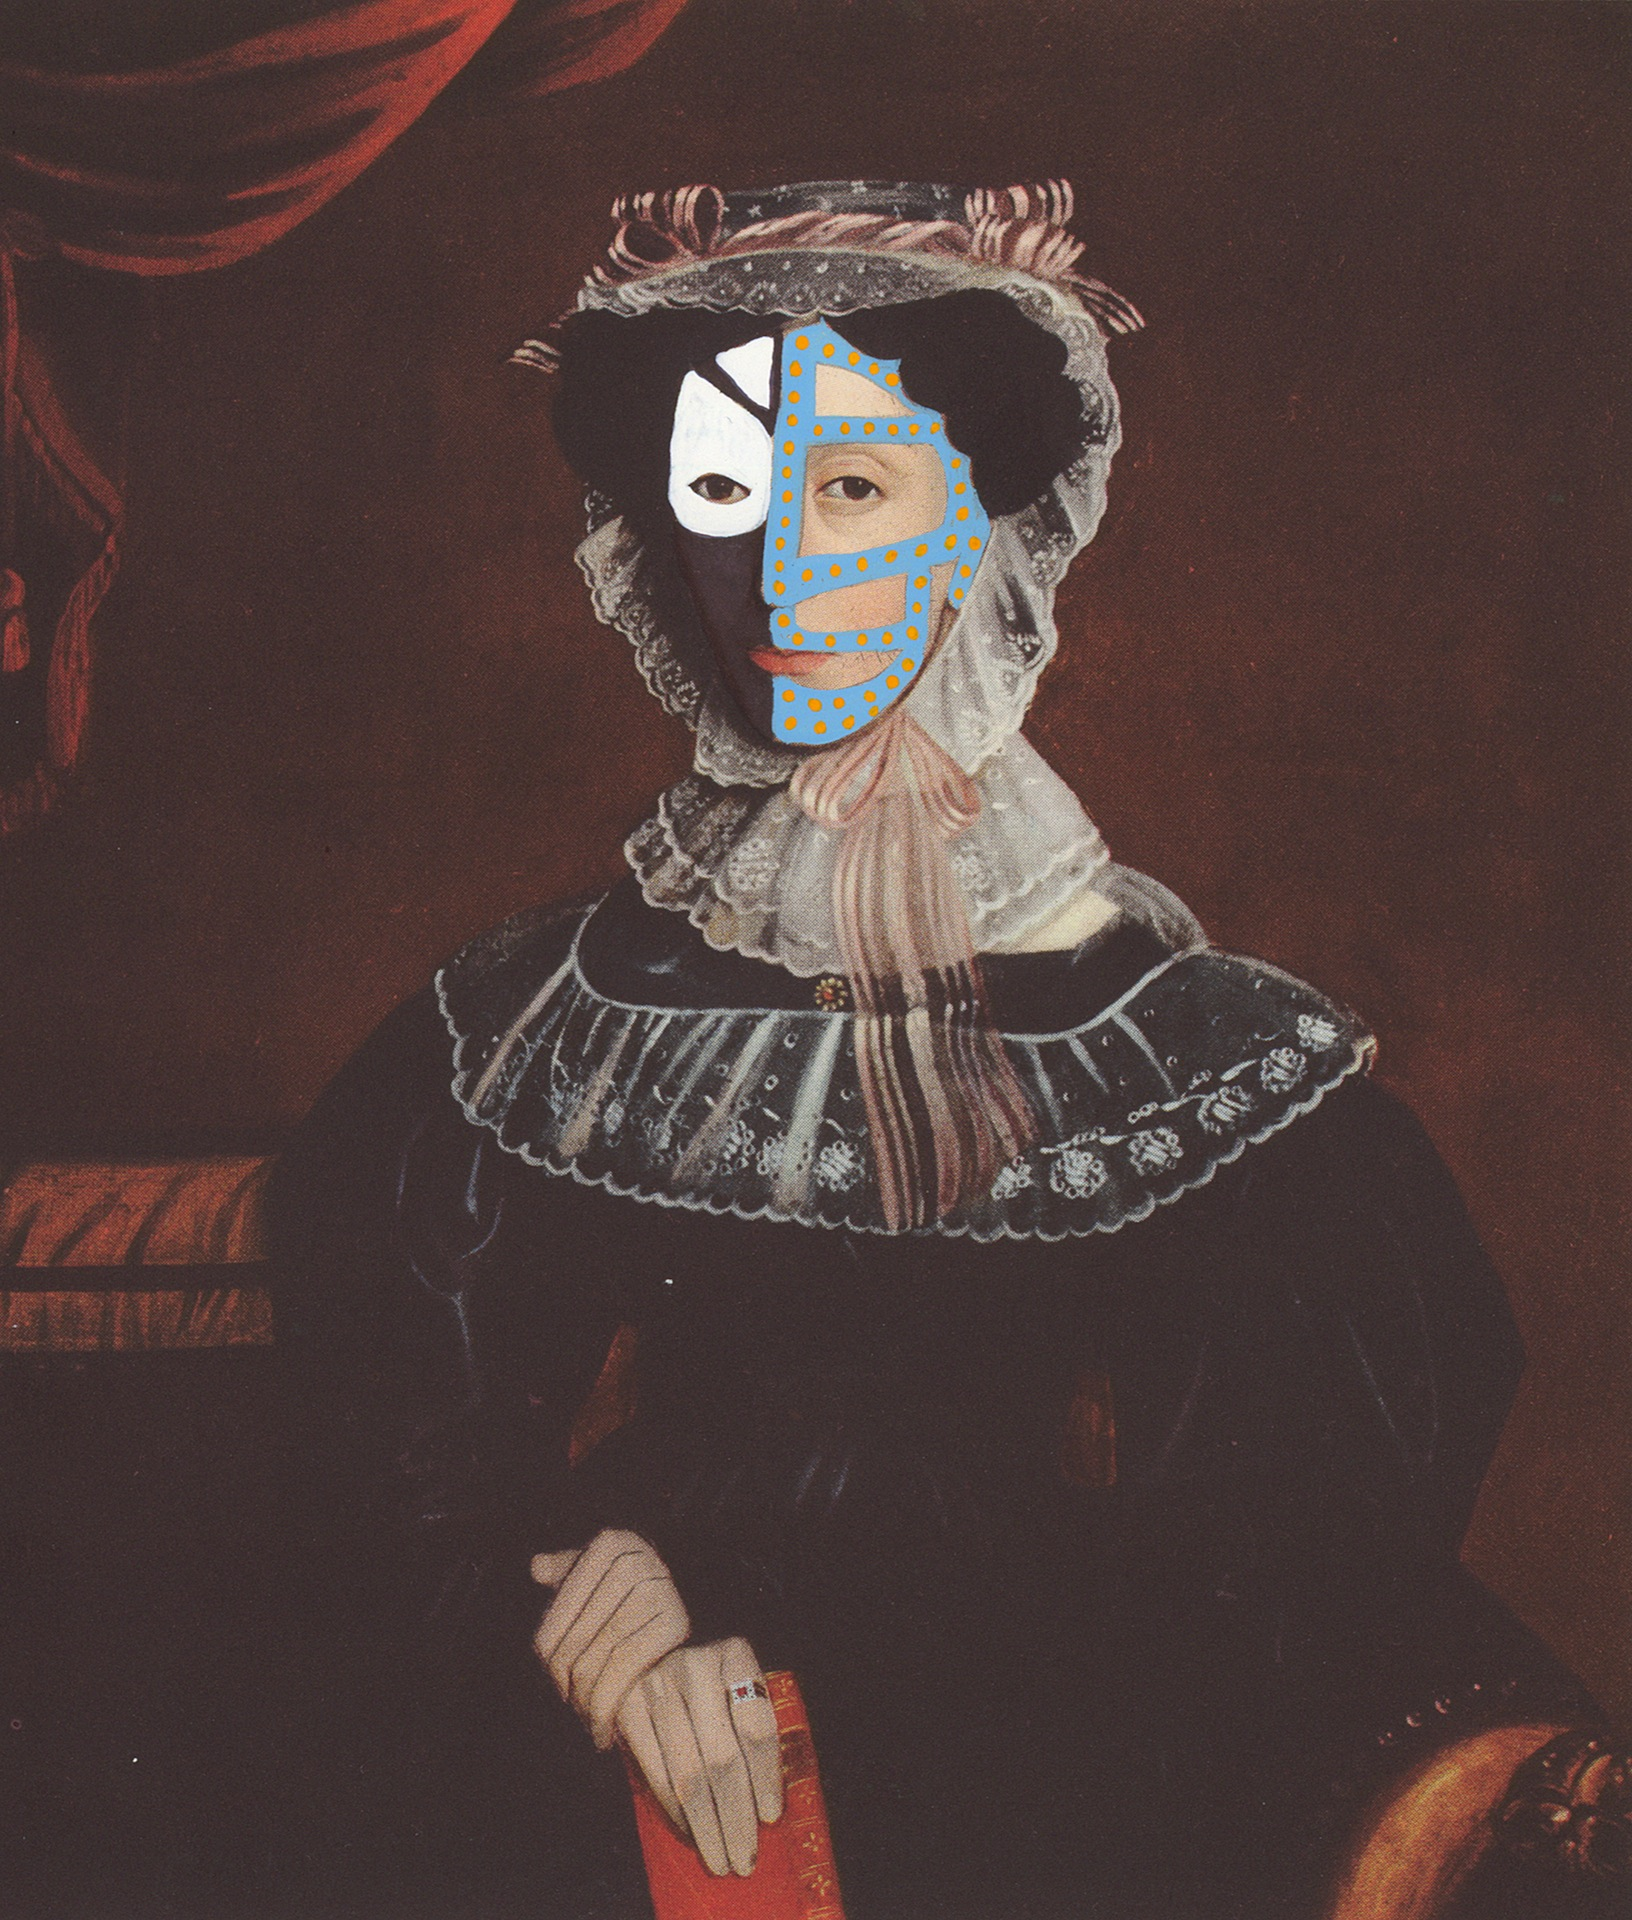 "Mrs. Ezra Tilton 1839/2014 , gouache and ink on book page, 6.75"" x 5.75"", 2014"